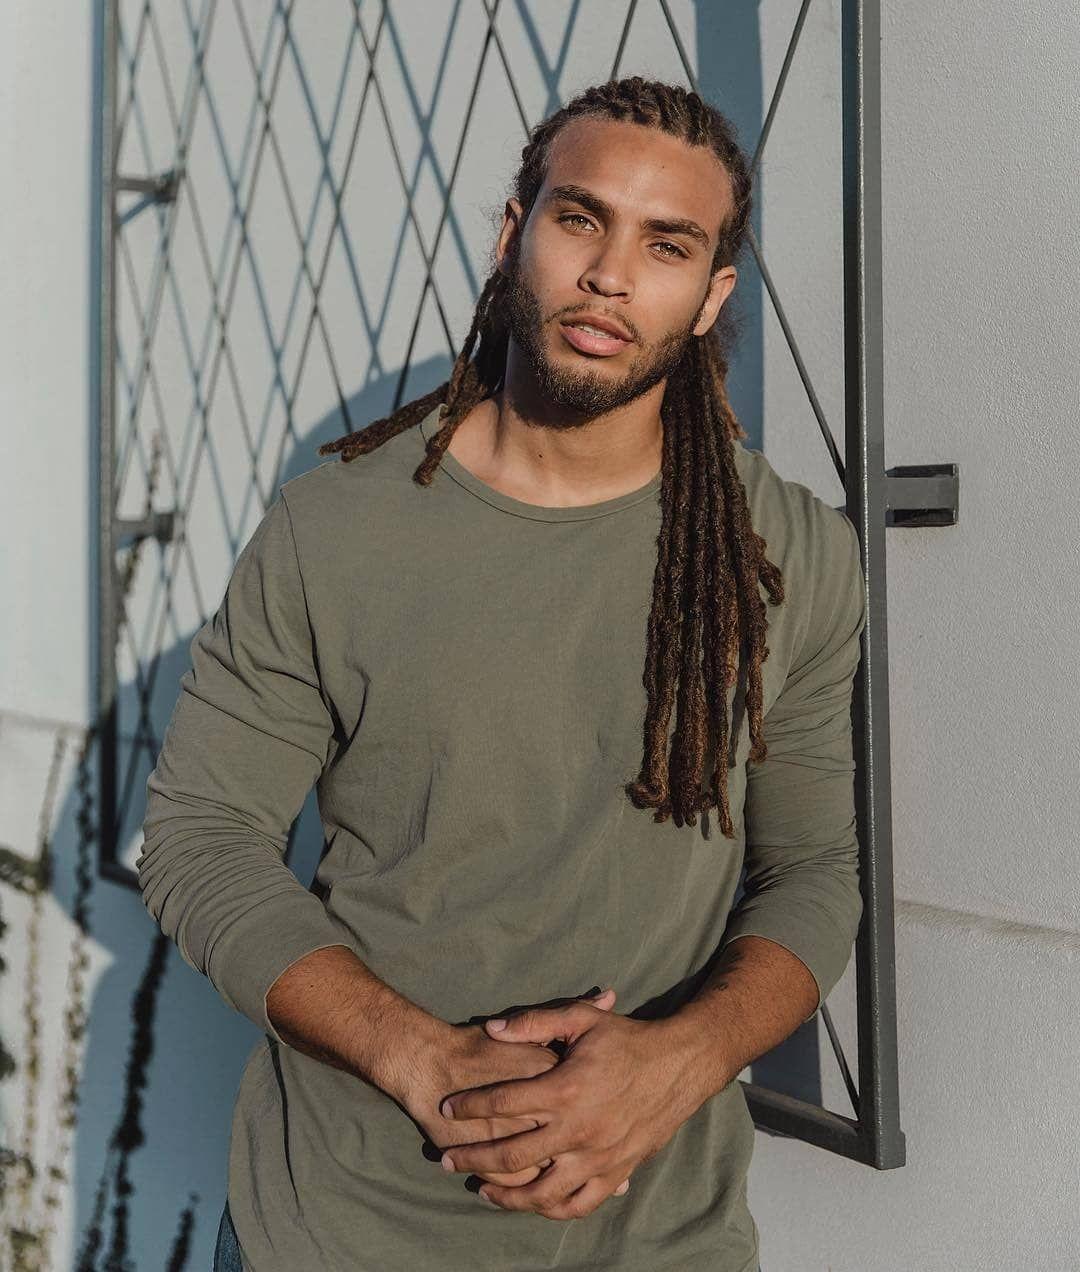 Men With Locs On Instagram Mr Moxam Photography By Christina Schaefer Light Skin Men Dreadlock Hairstyles For Men Light Skin Boys